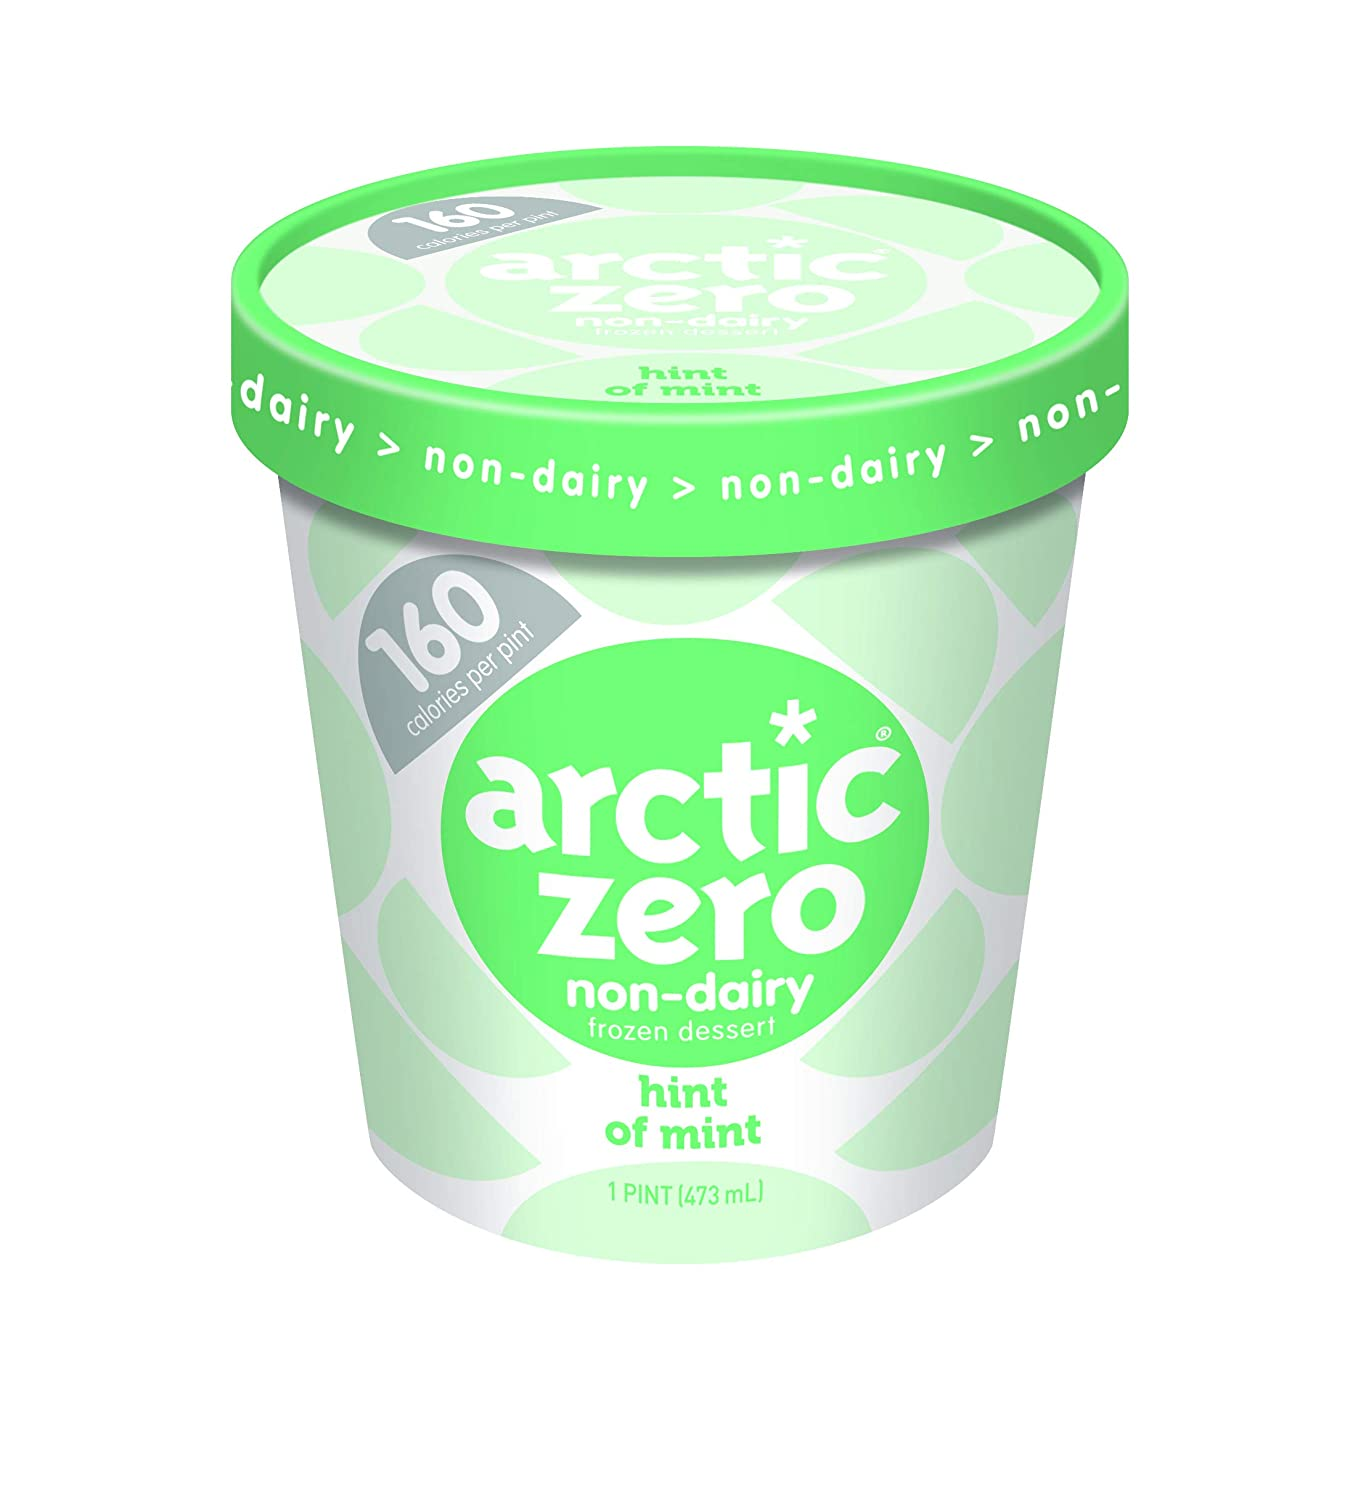 6 Pack, Arctic Zero Salted Caramel Pint: Amazon.com: Grocery ...